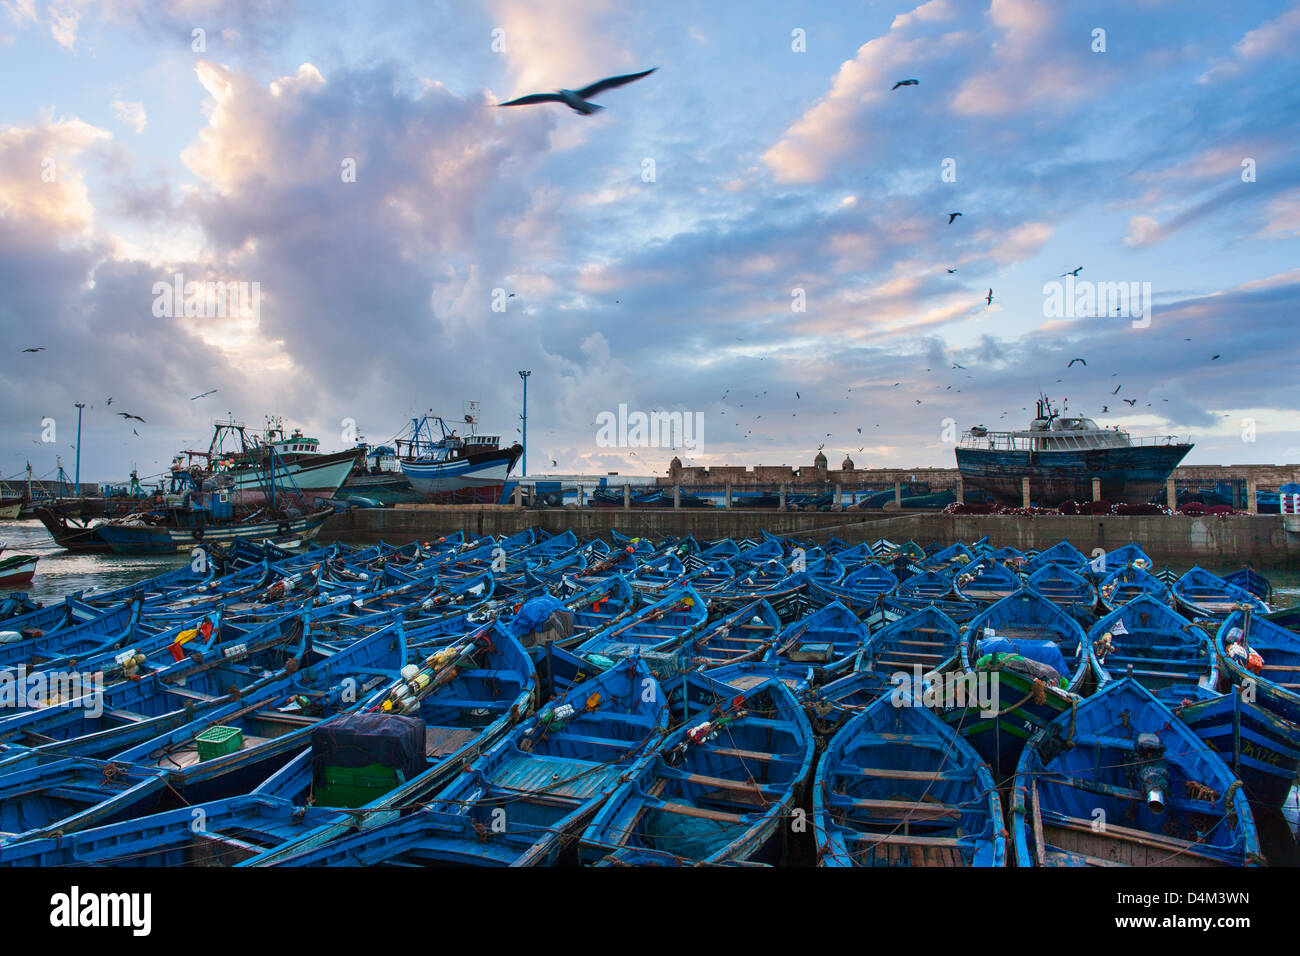 Birds flying over boats in urban harbor Photo Stock